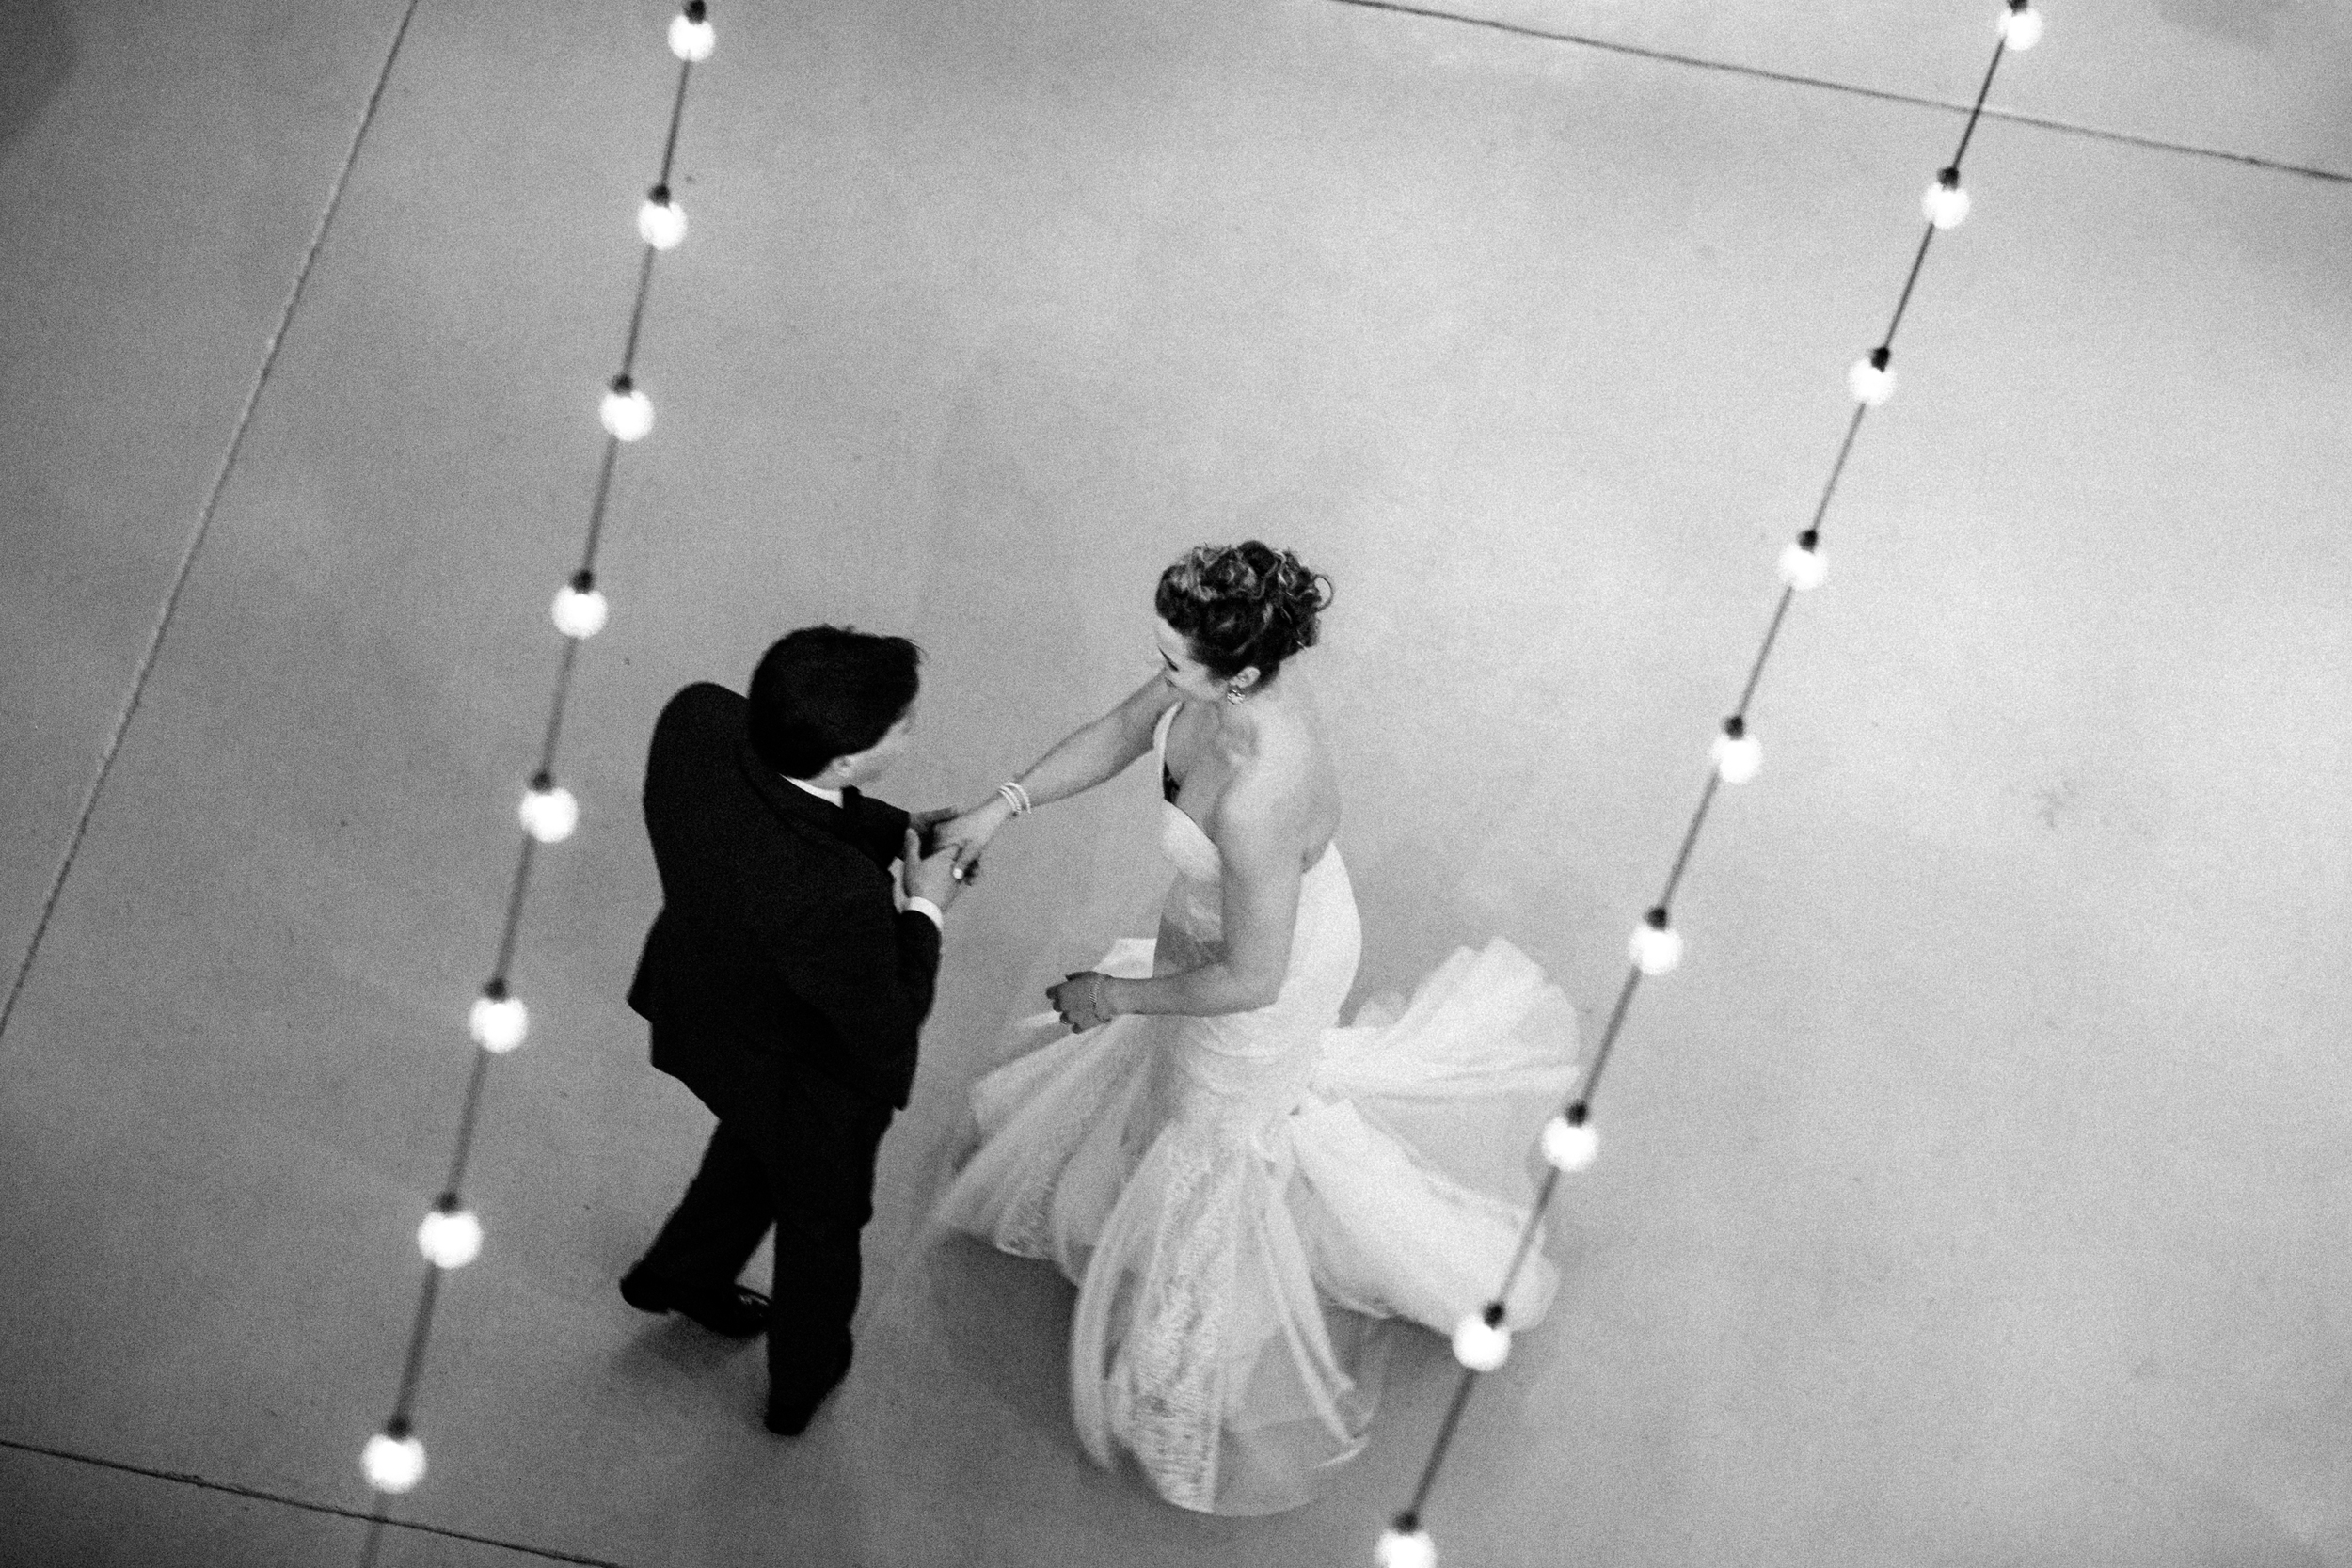 Jack caught this great overhead shot of these two during their first dance at the wedding.